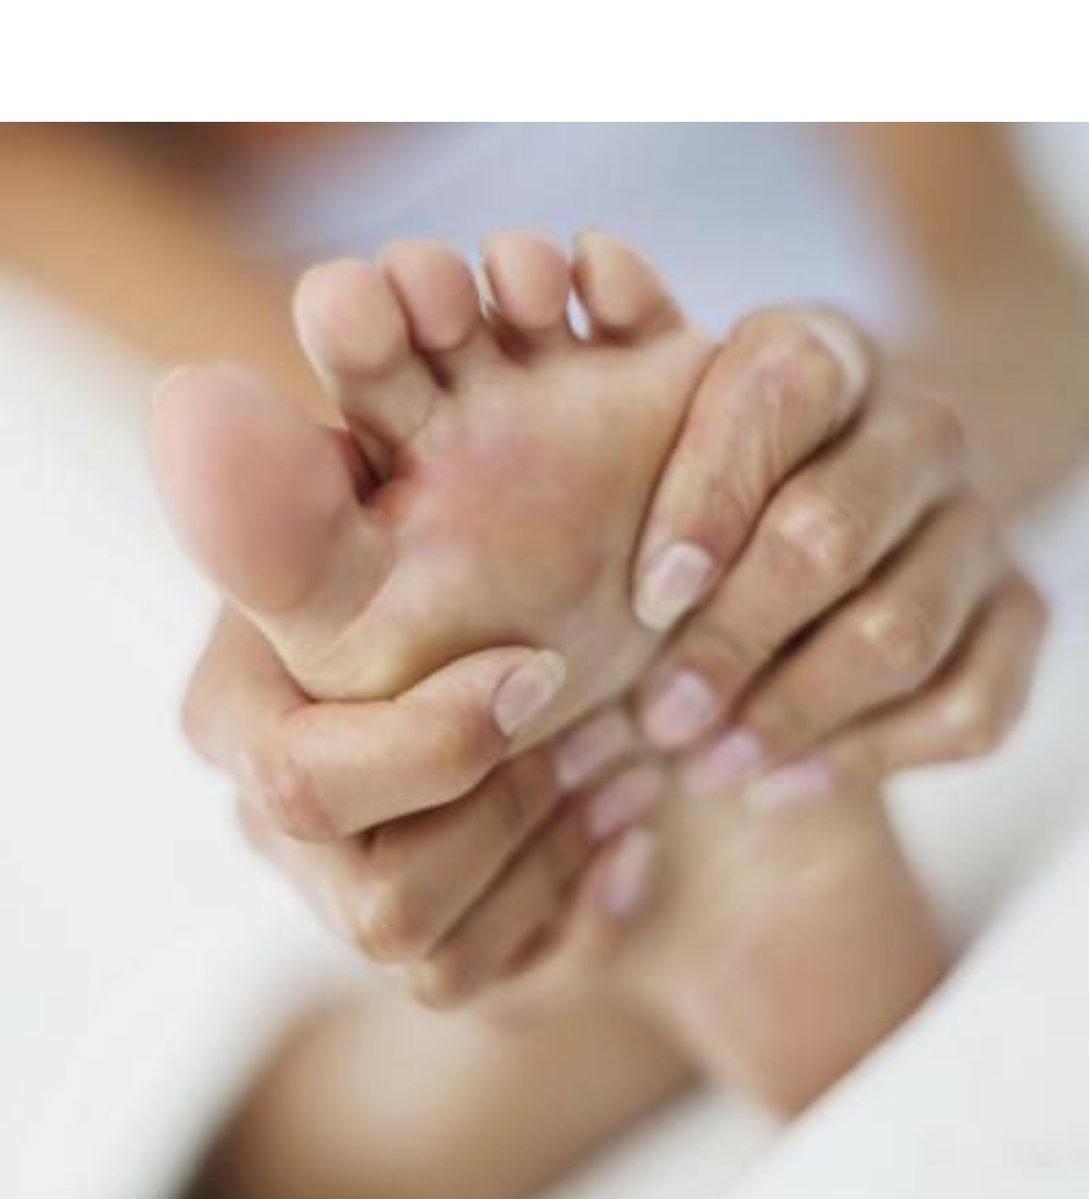 Treat yourself & get addicted! Pamper yourself & relieve #stress this #holiday with a foot massage for little to no money! Learn self-massage or treat someone u love! Get tips at  #TuesdayMorning #TuesdayThoughts #TuesdayMotivation #TuesdayTrivia #BeKind